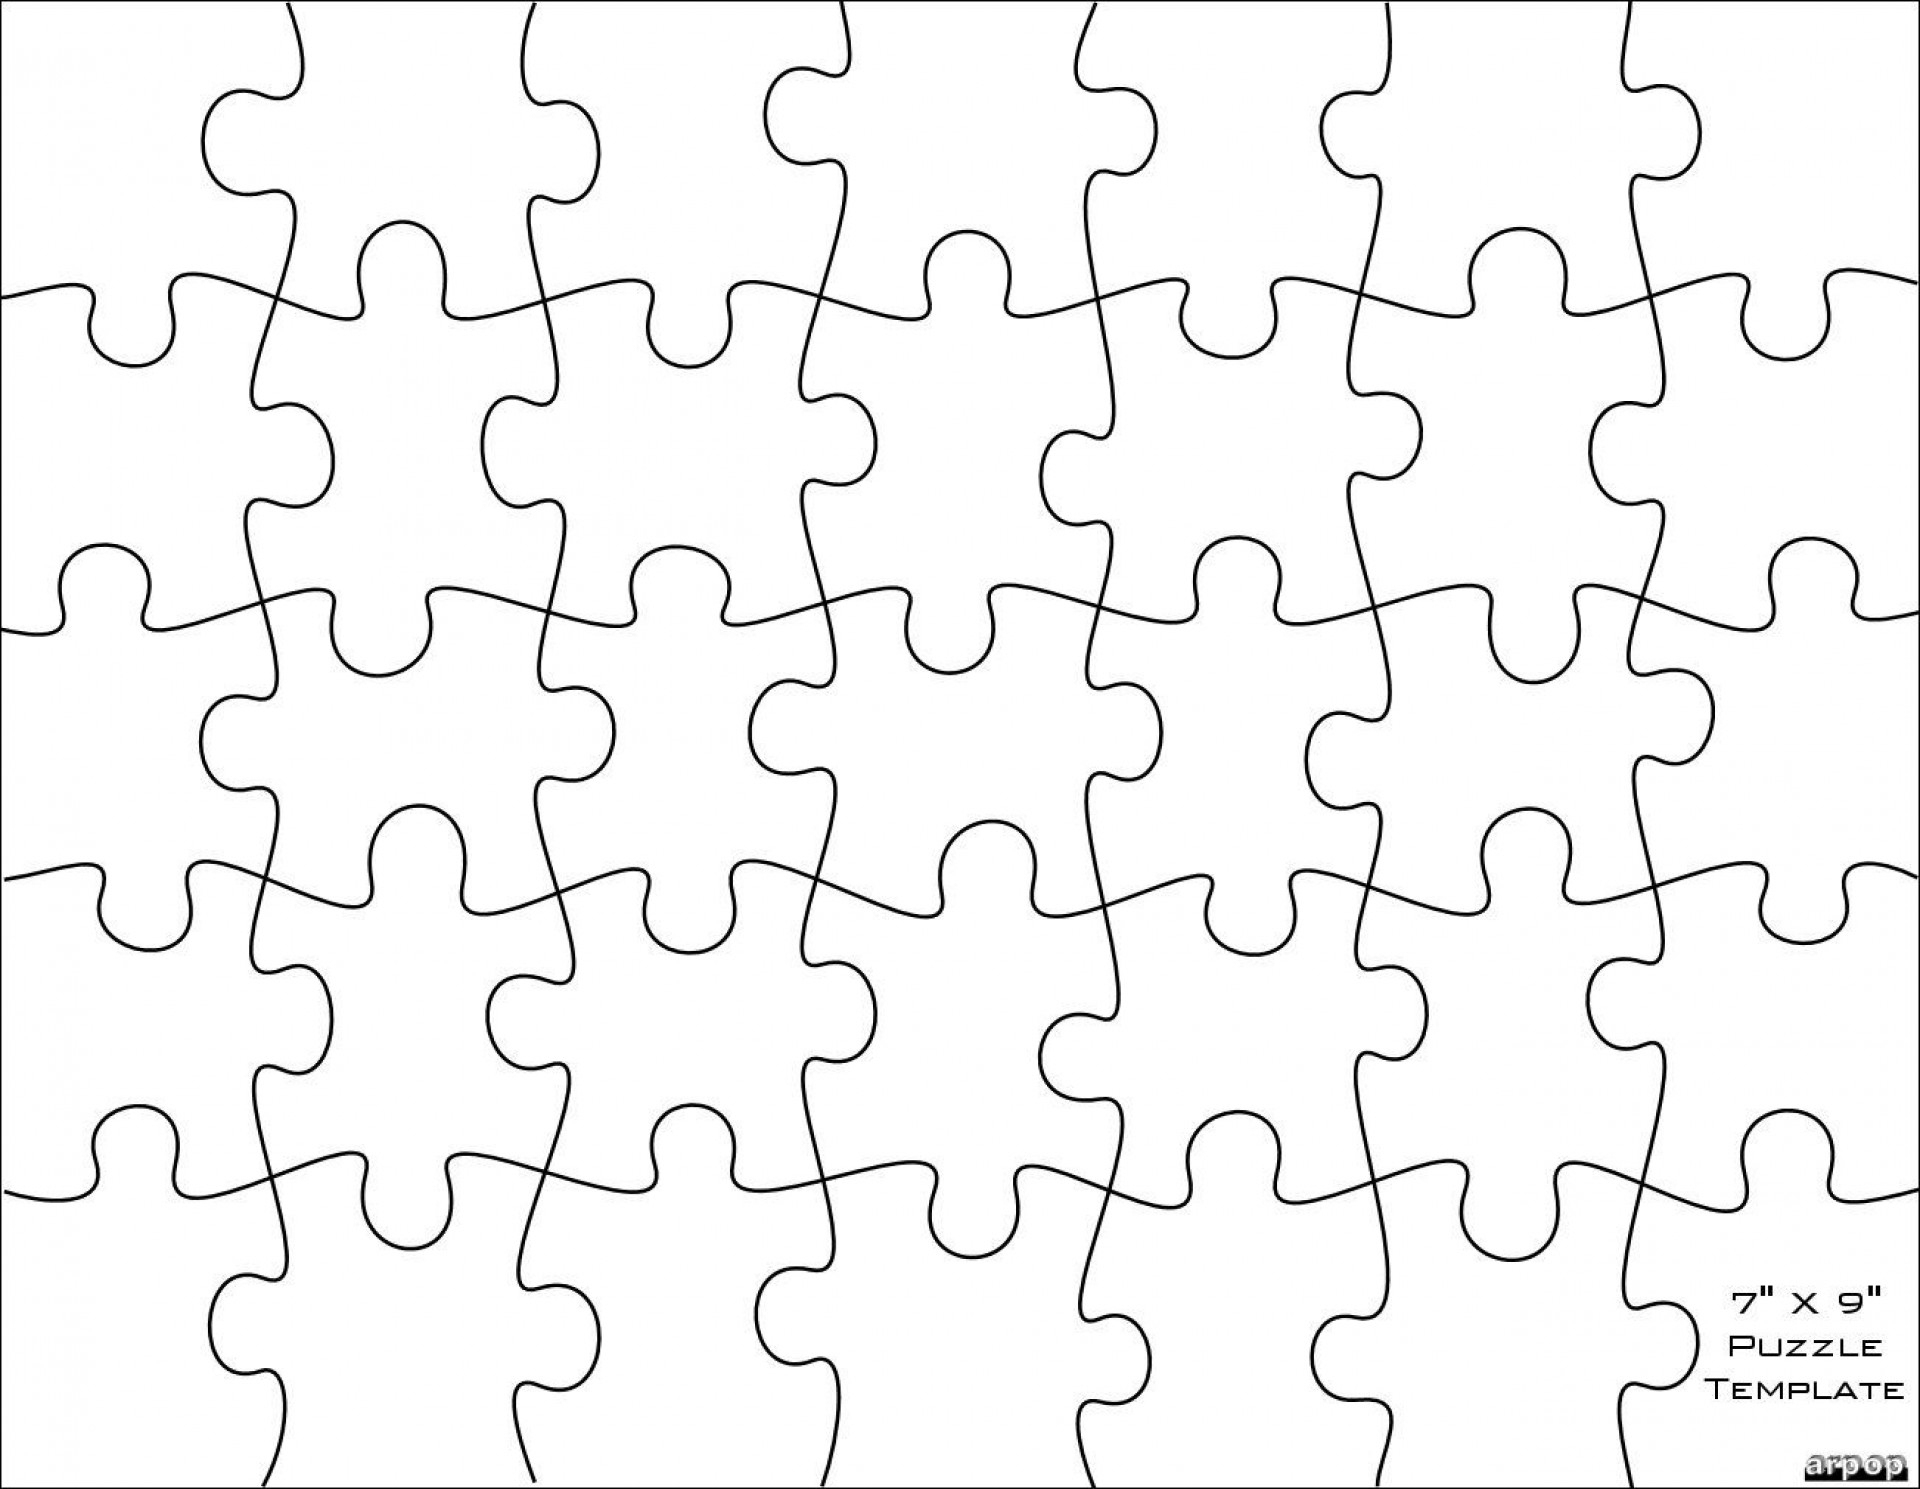 006 Jigsaw Puzzle Blank Template Twenty Pieces Simple Jig Saw - Printable Jigsaw Puzzle Templates Blank